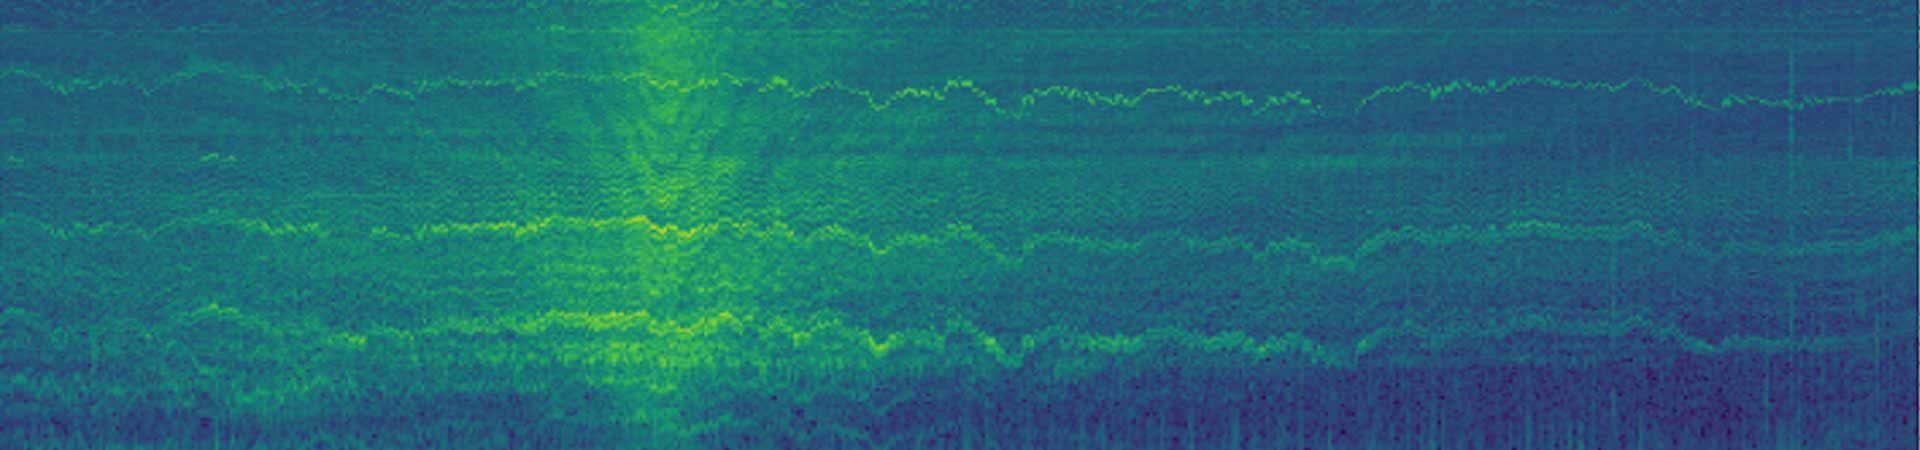 Underwater noise spectrogram from drifting hydrophones in the Pentland Firth while a turbine was operational